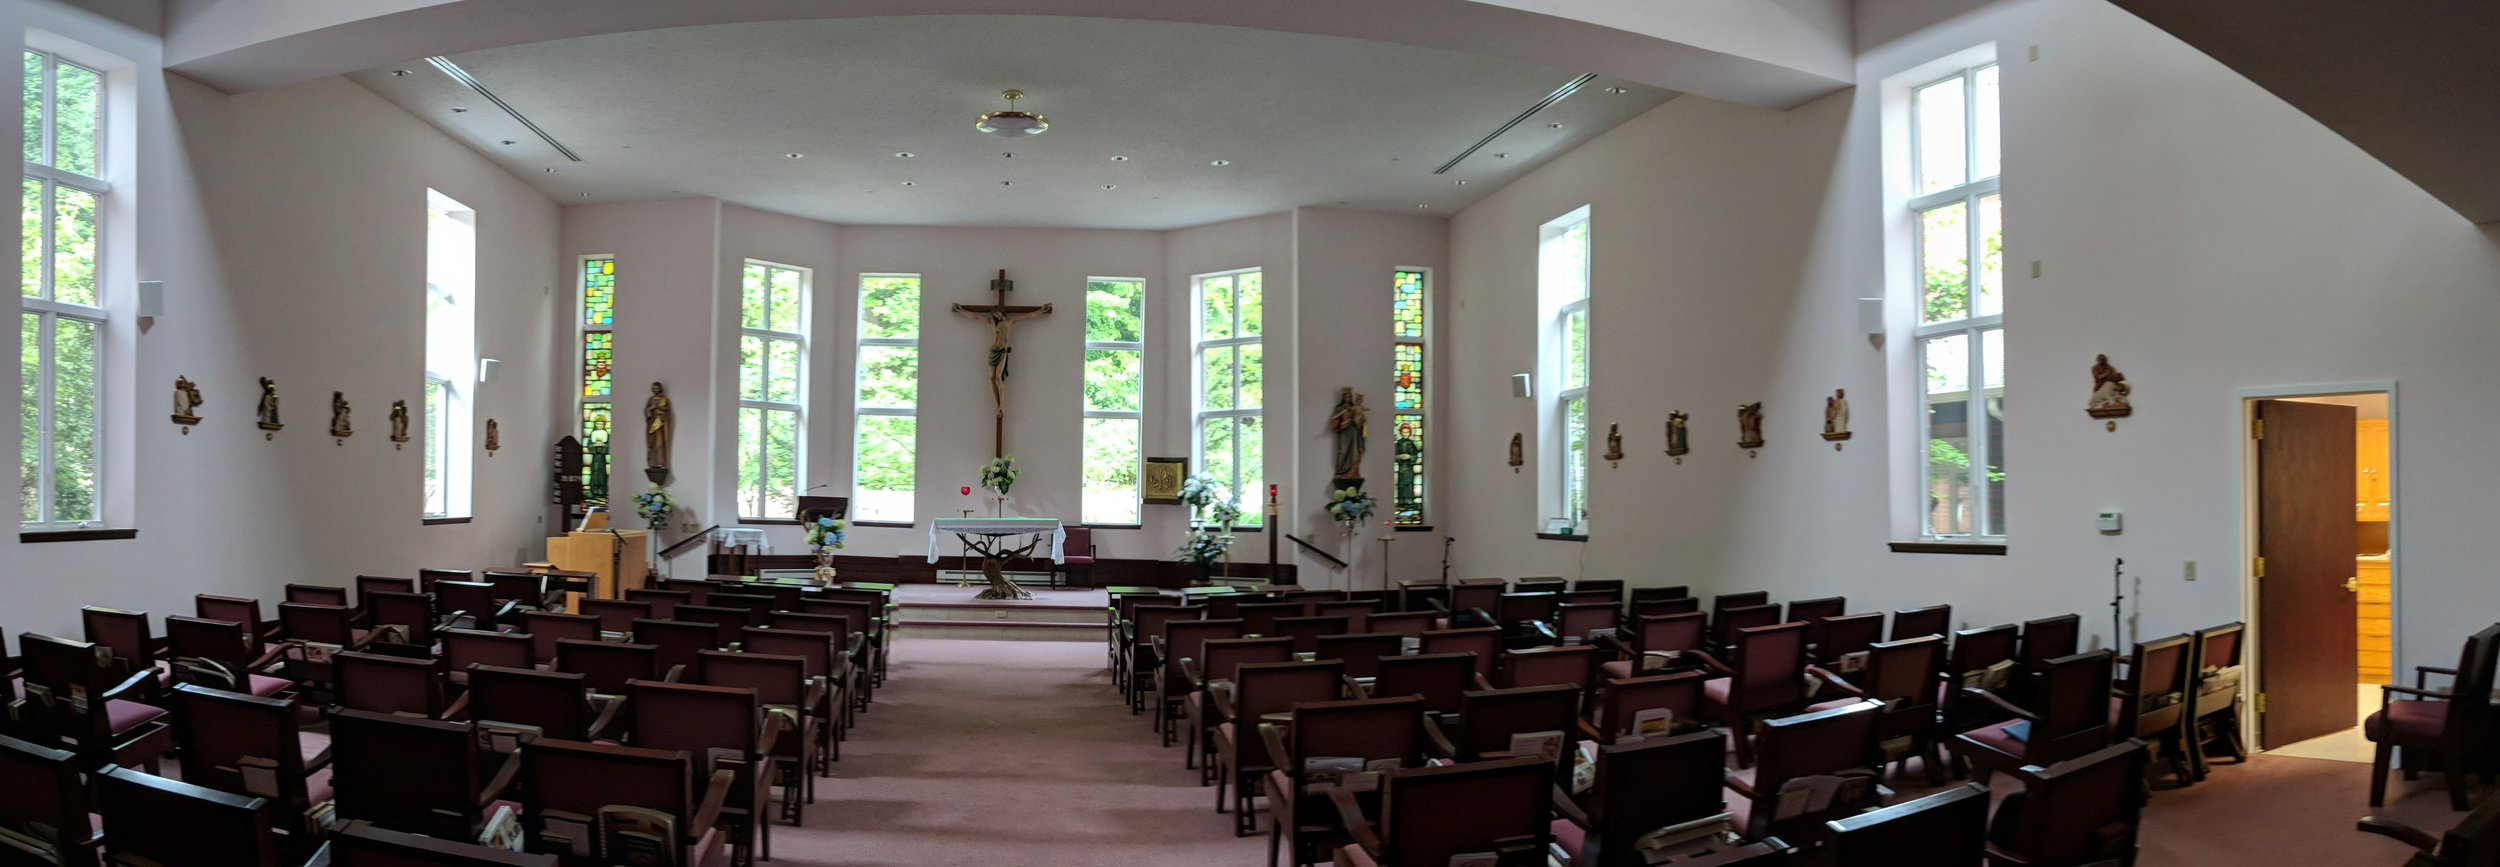 CAMM DT-200 speakers are used throughout the chapel.